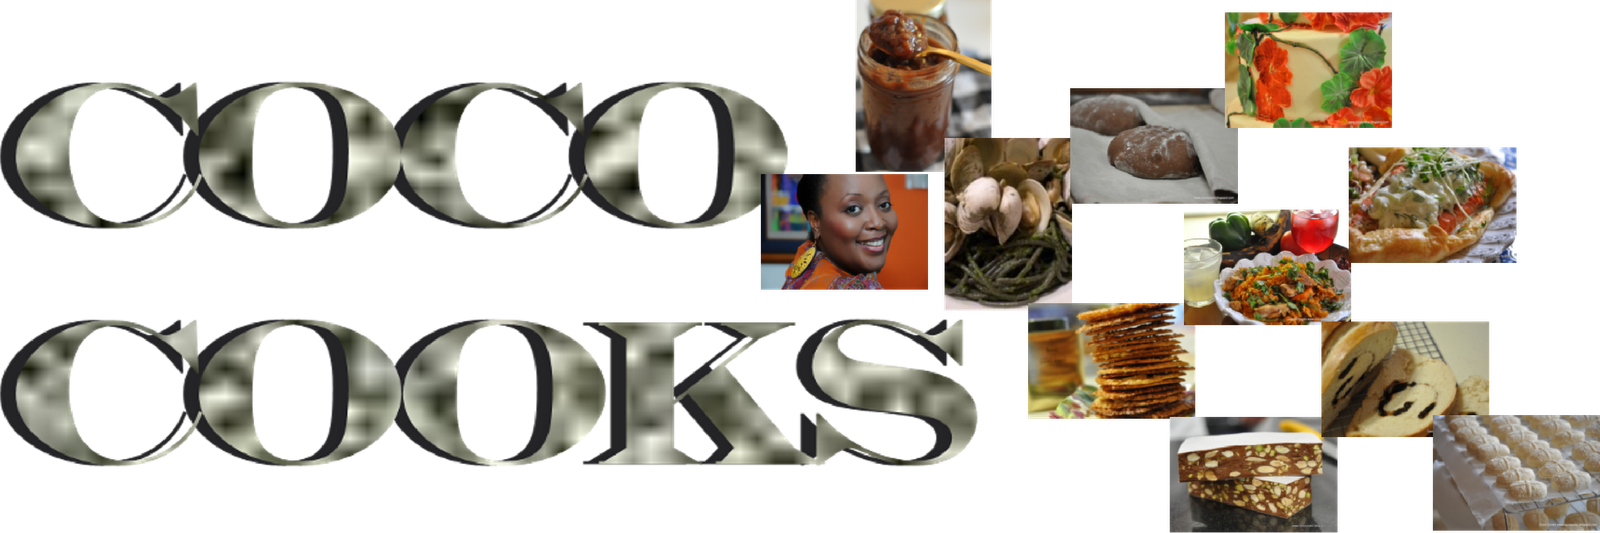 Coco Cooks